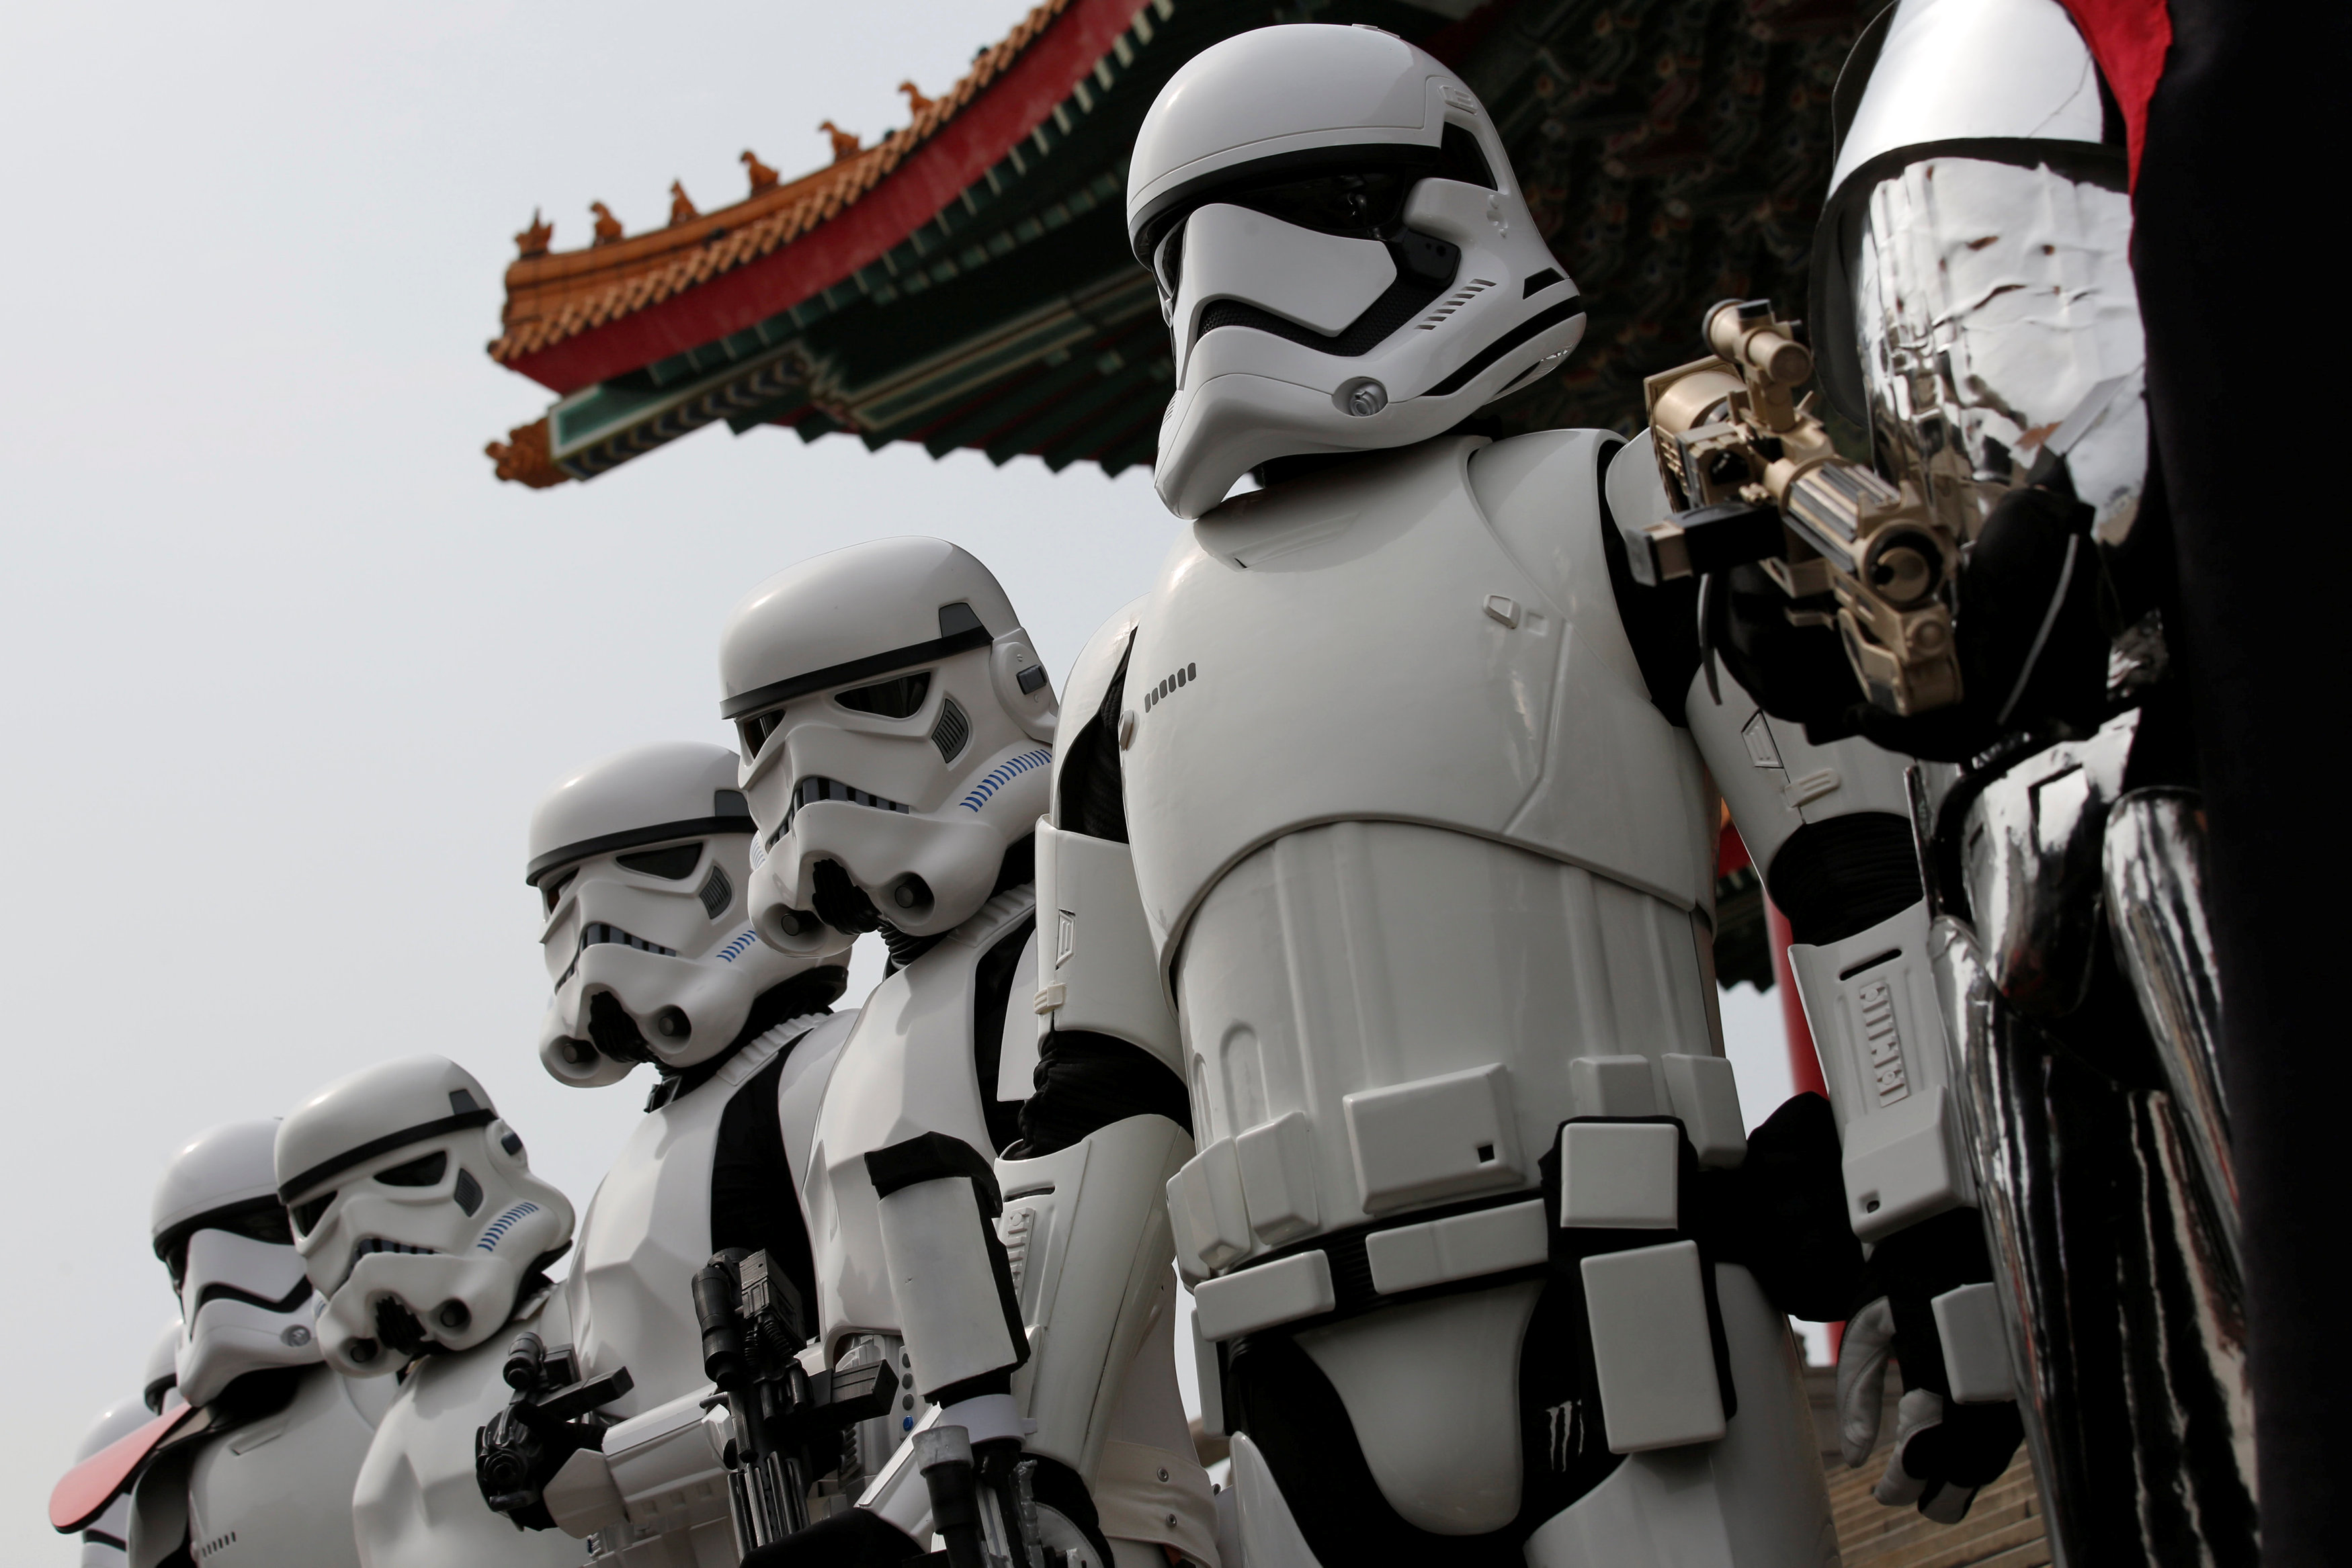 Heathrow Airport just won Star Wars day with this epic tweet